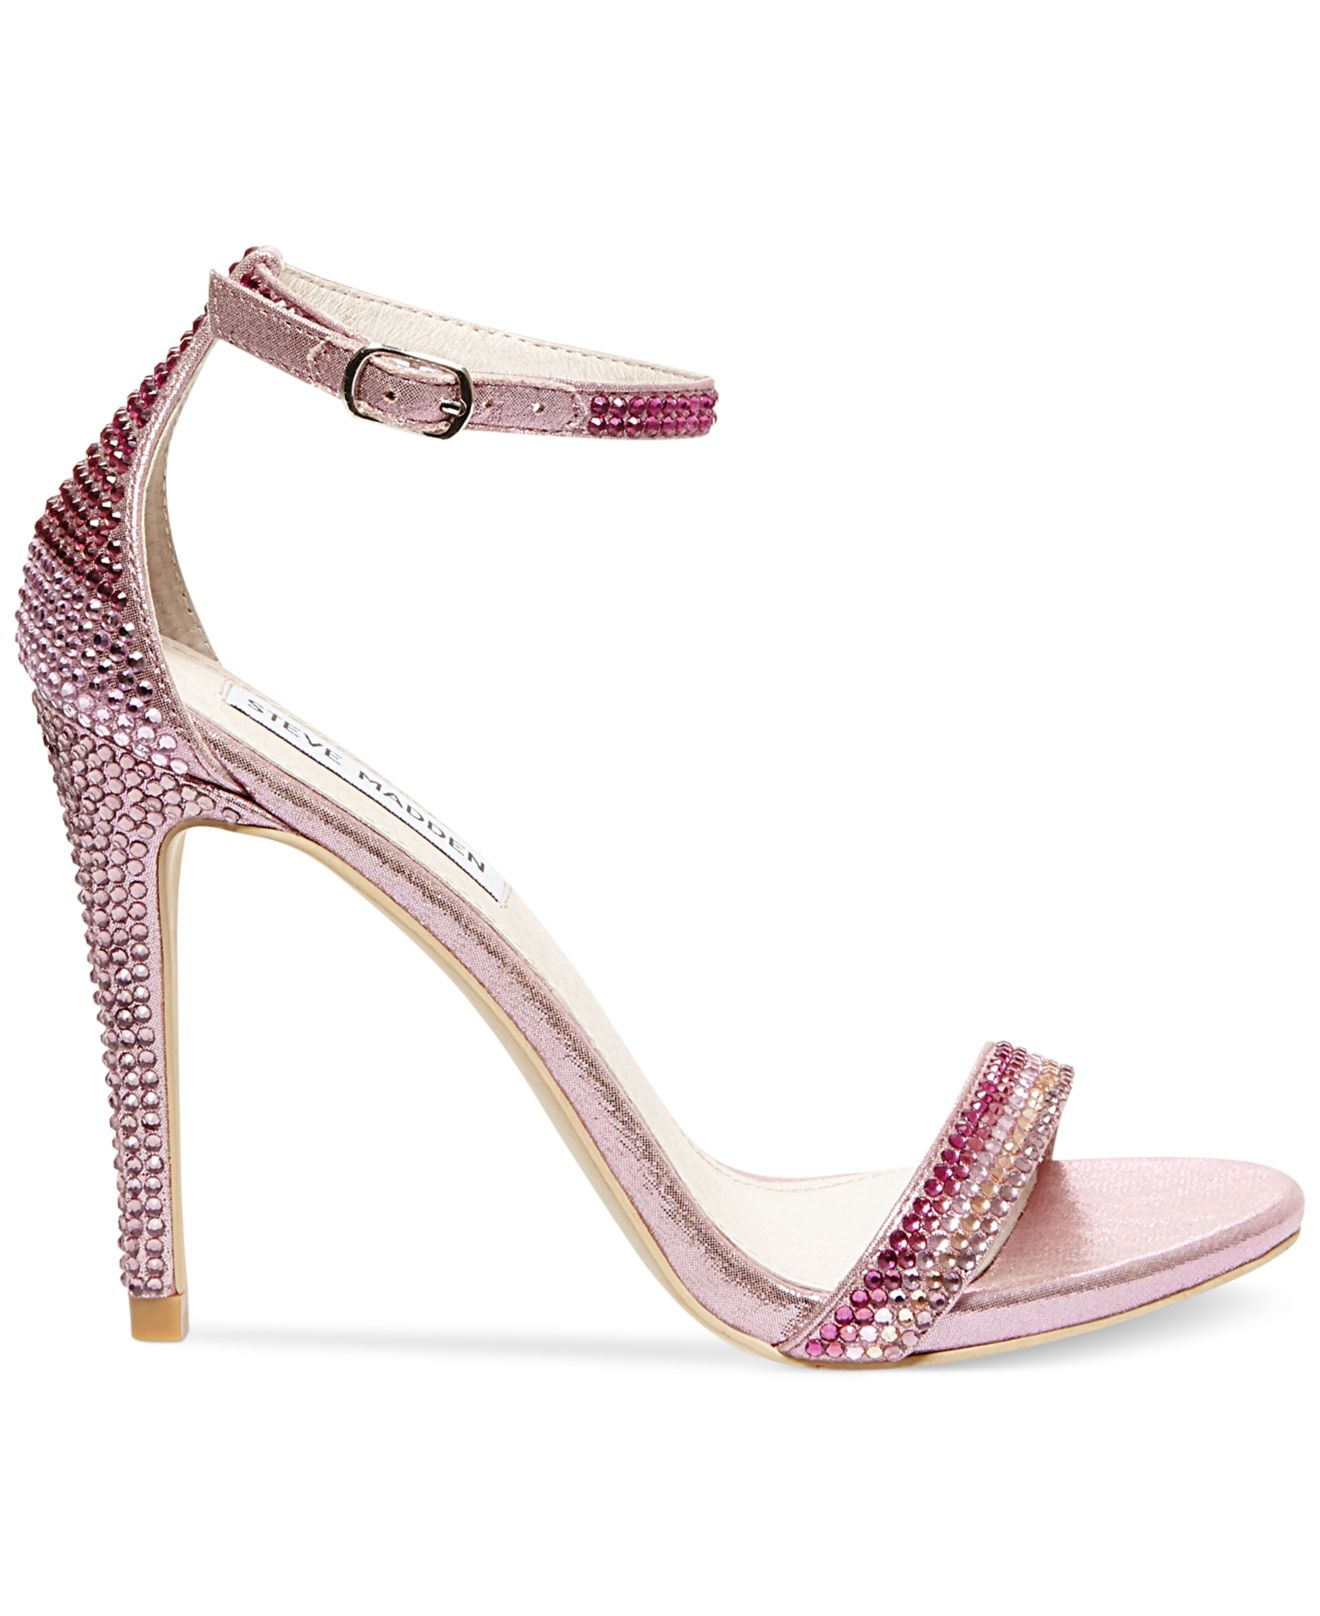 4ce5219d447 Lyst - Steve Madden Women s Stecy Rhinestone Two-piece Sandals in Pink